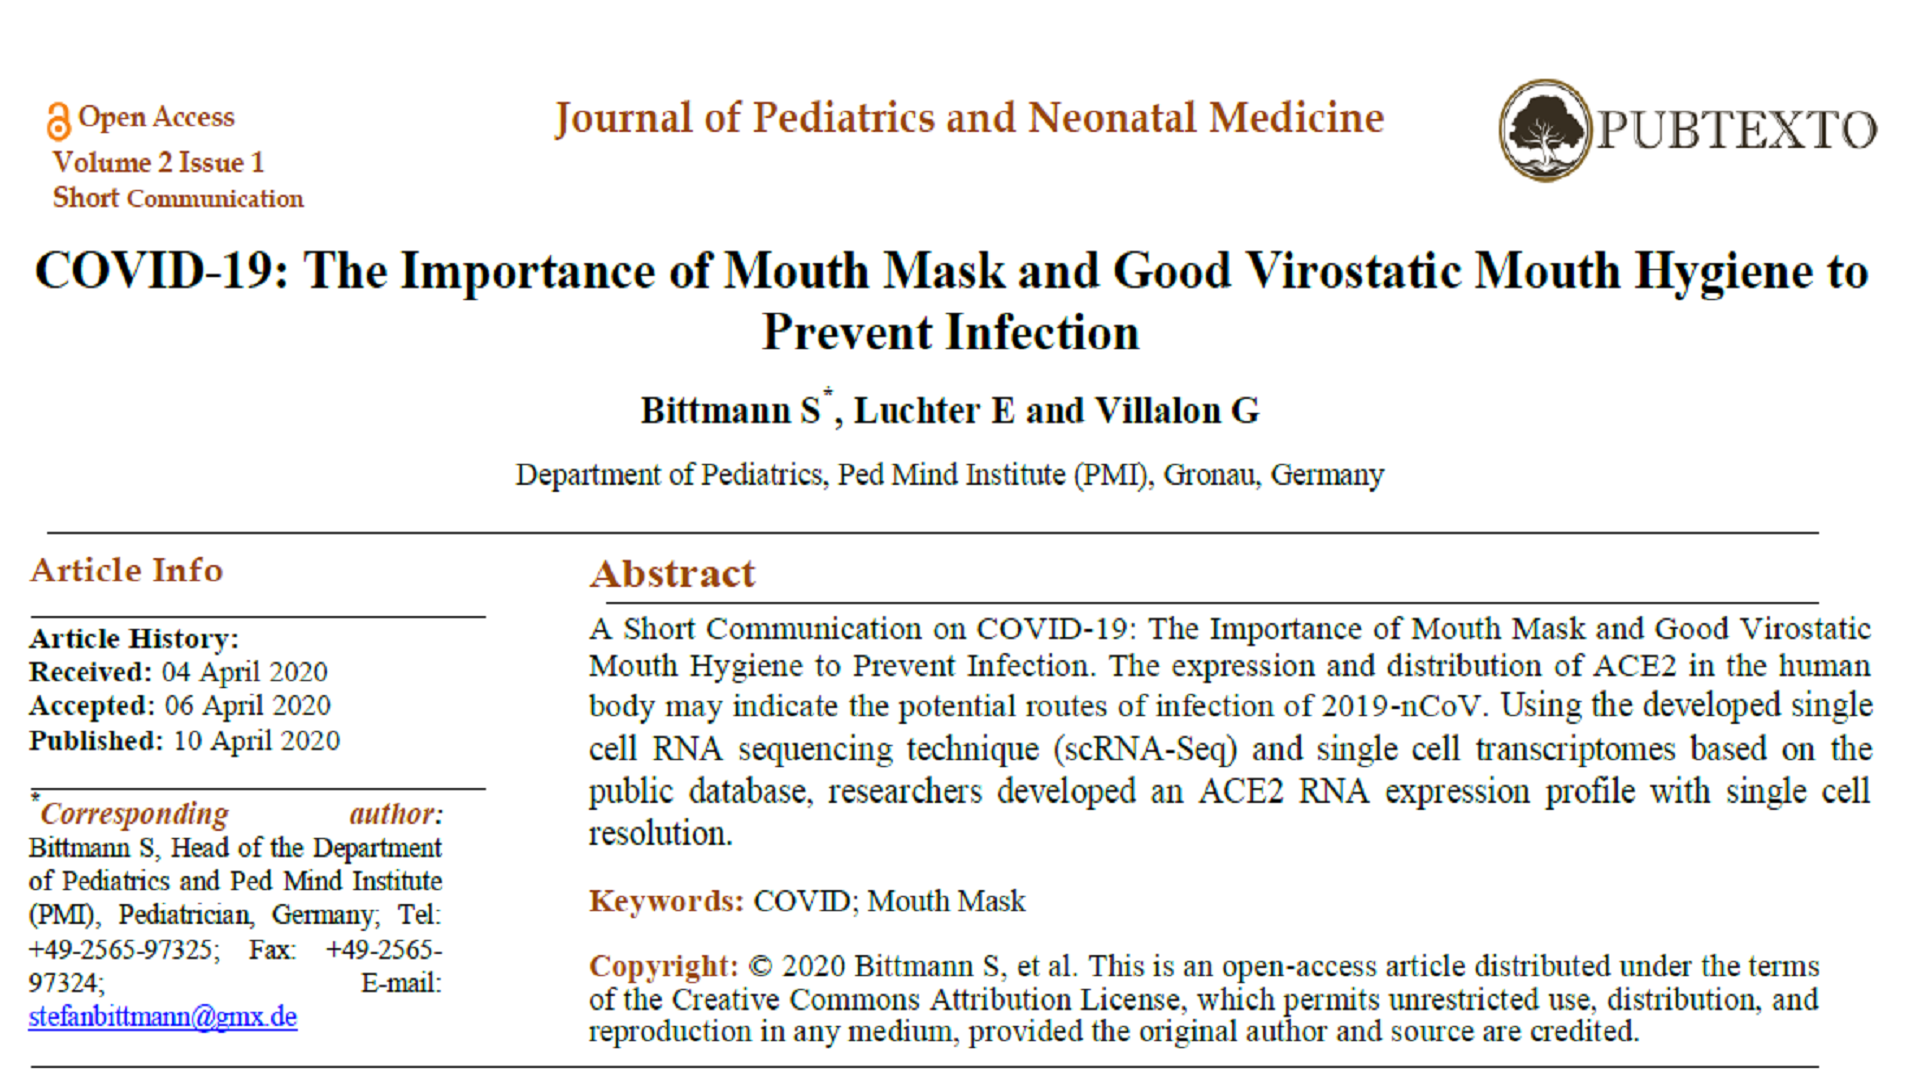 COVID-19: The Importance of Mouth Mask and Good Virostatic Mouth Hygiene to Prevent Infection